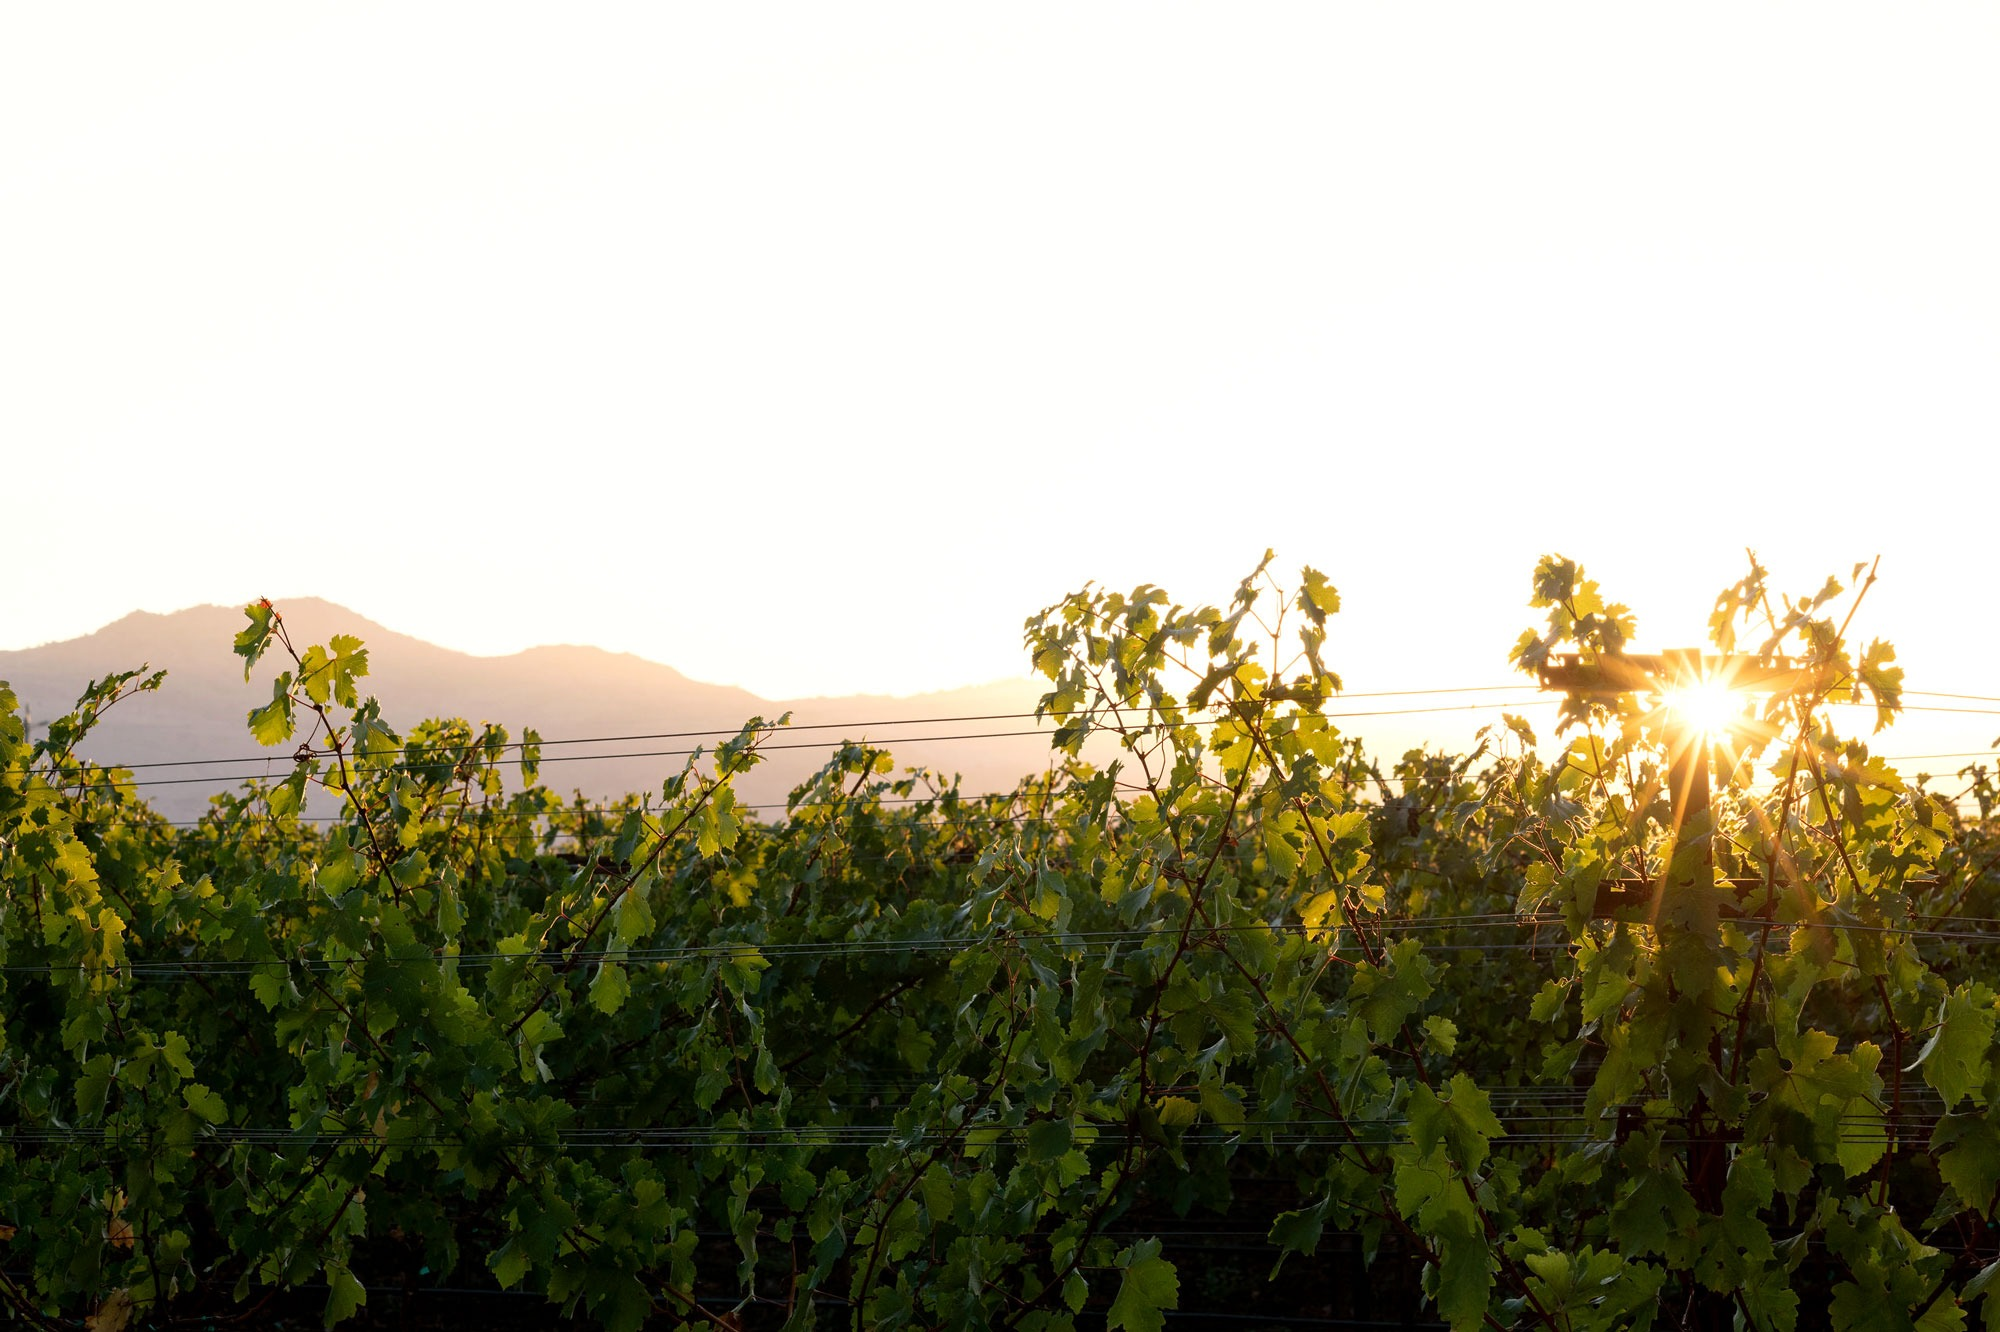 Sunrise peeking through the vines at M-Bar Ranch